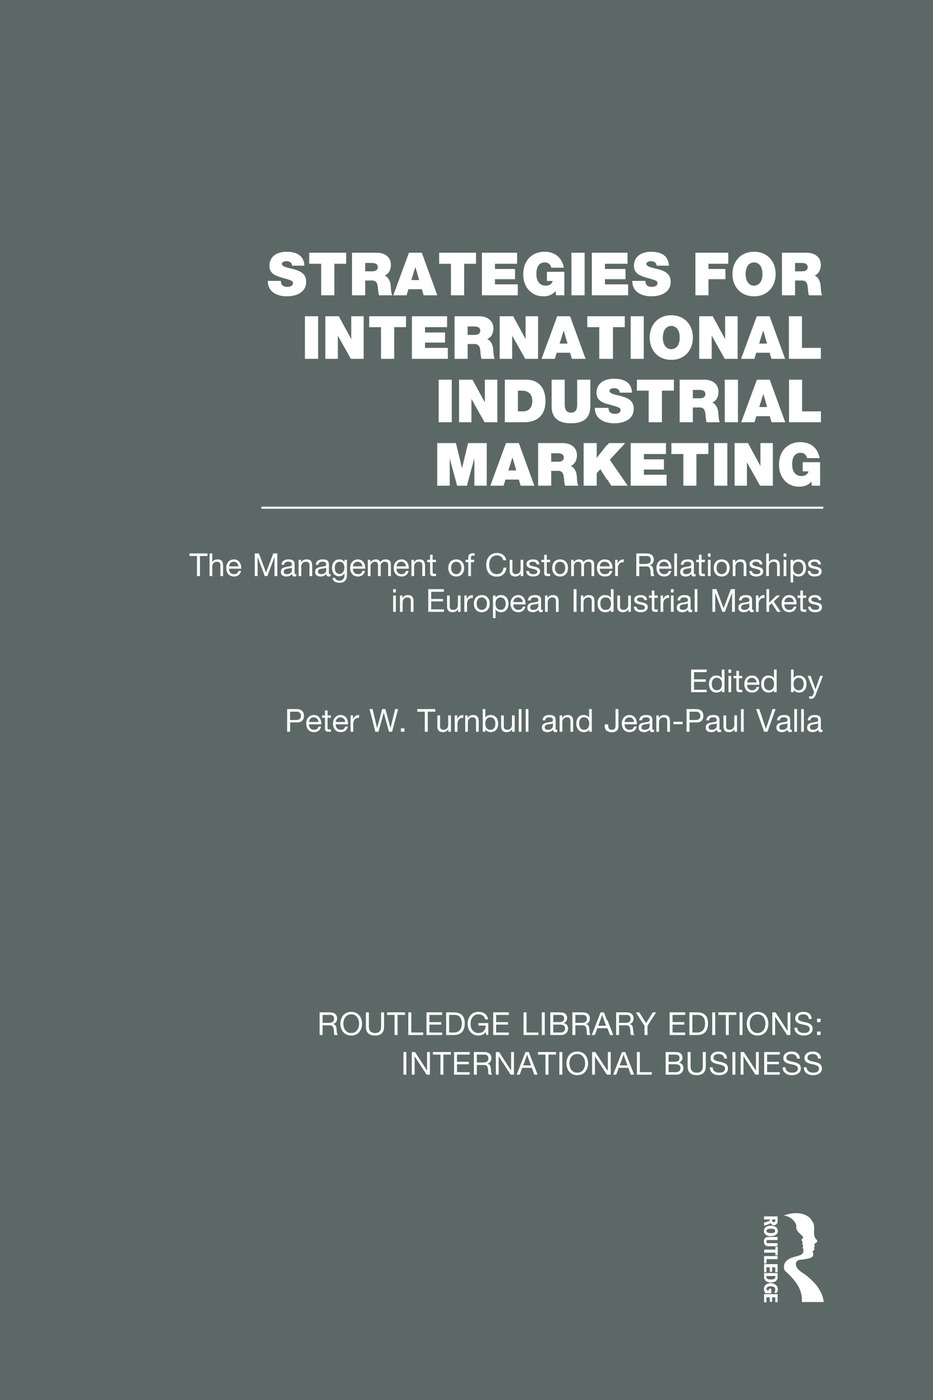 Strategies for International Industrial Marketing (RLE International Business): The Management of Customer Relationships in European Industrial Markets book cover